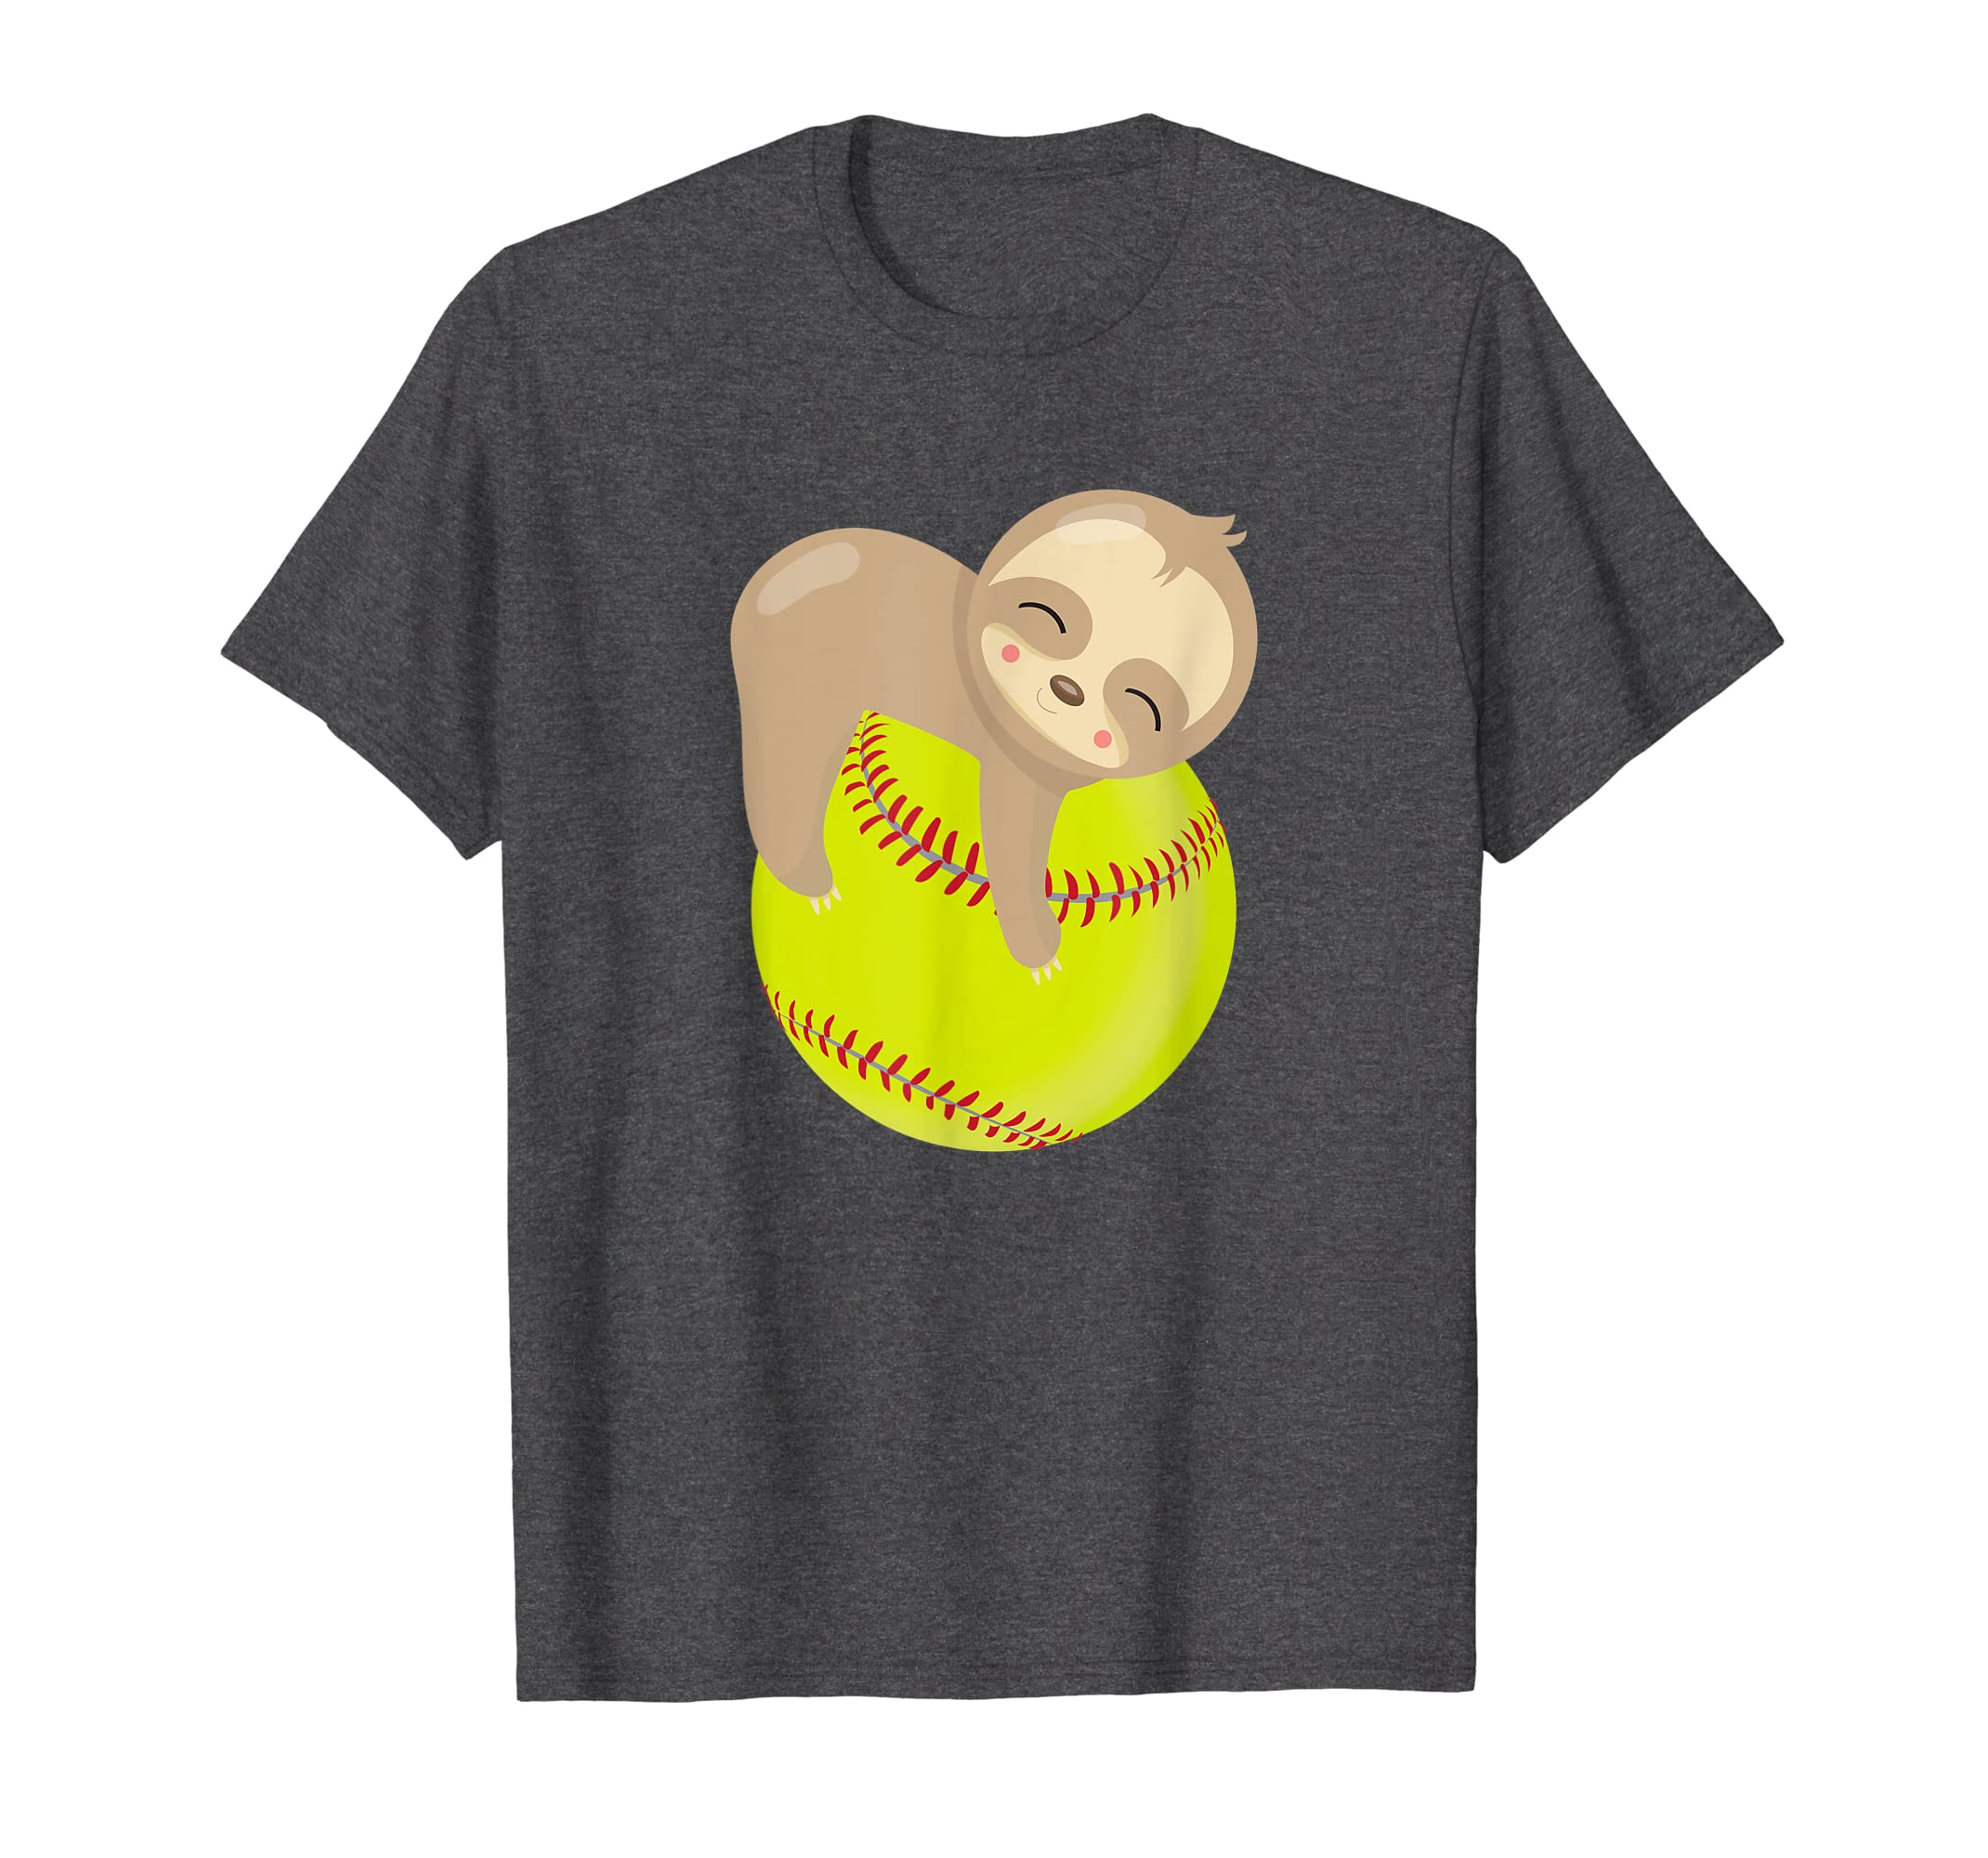 9ca2f7619 Amazon.com: Sloth Softball Shirt - Funny Cute Animal Lover Gift: Clothing